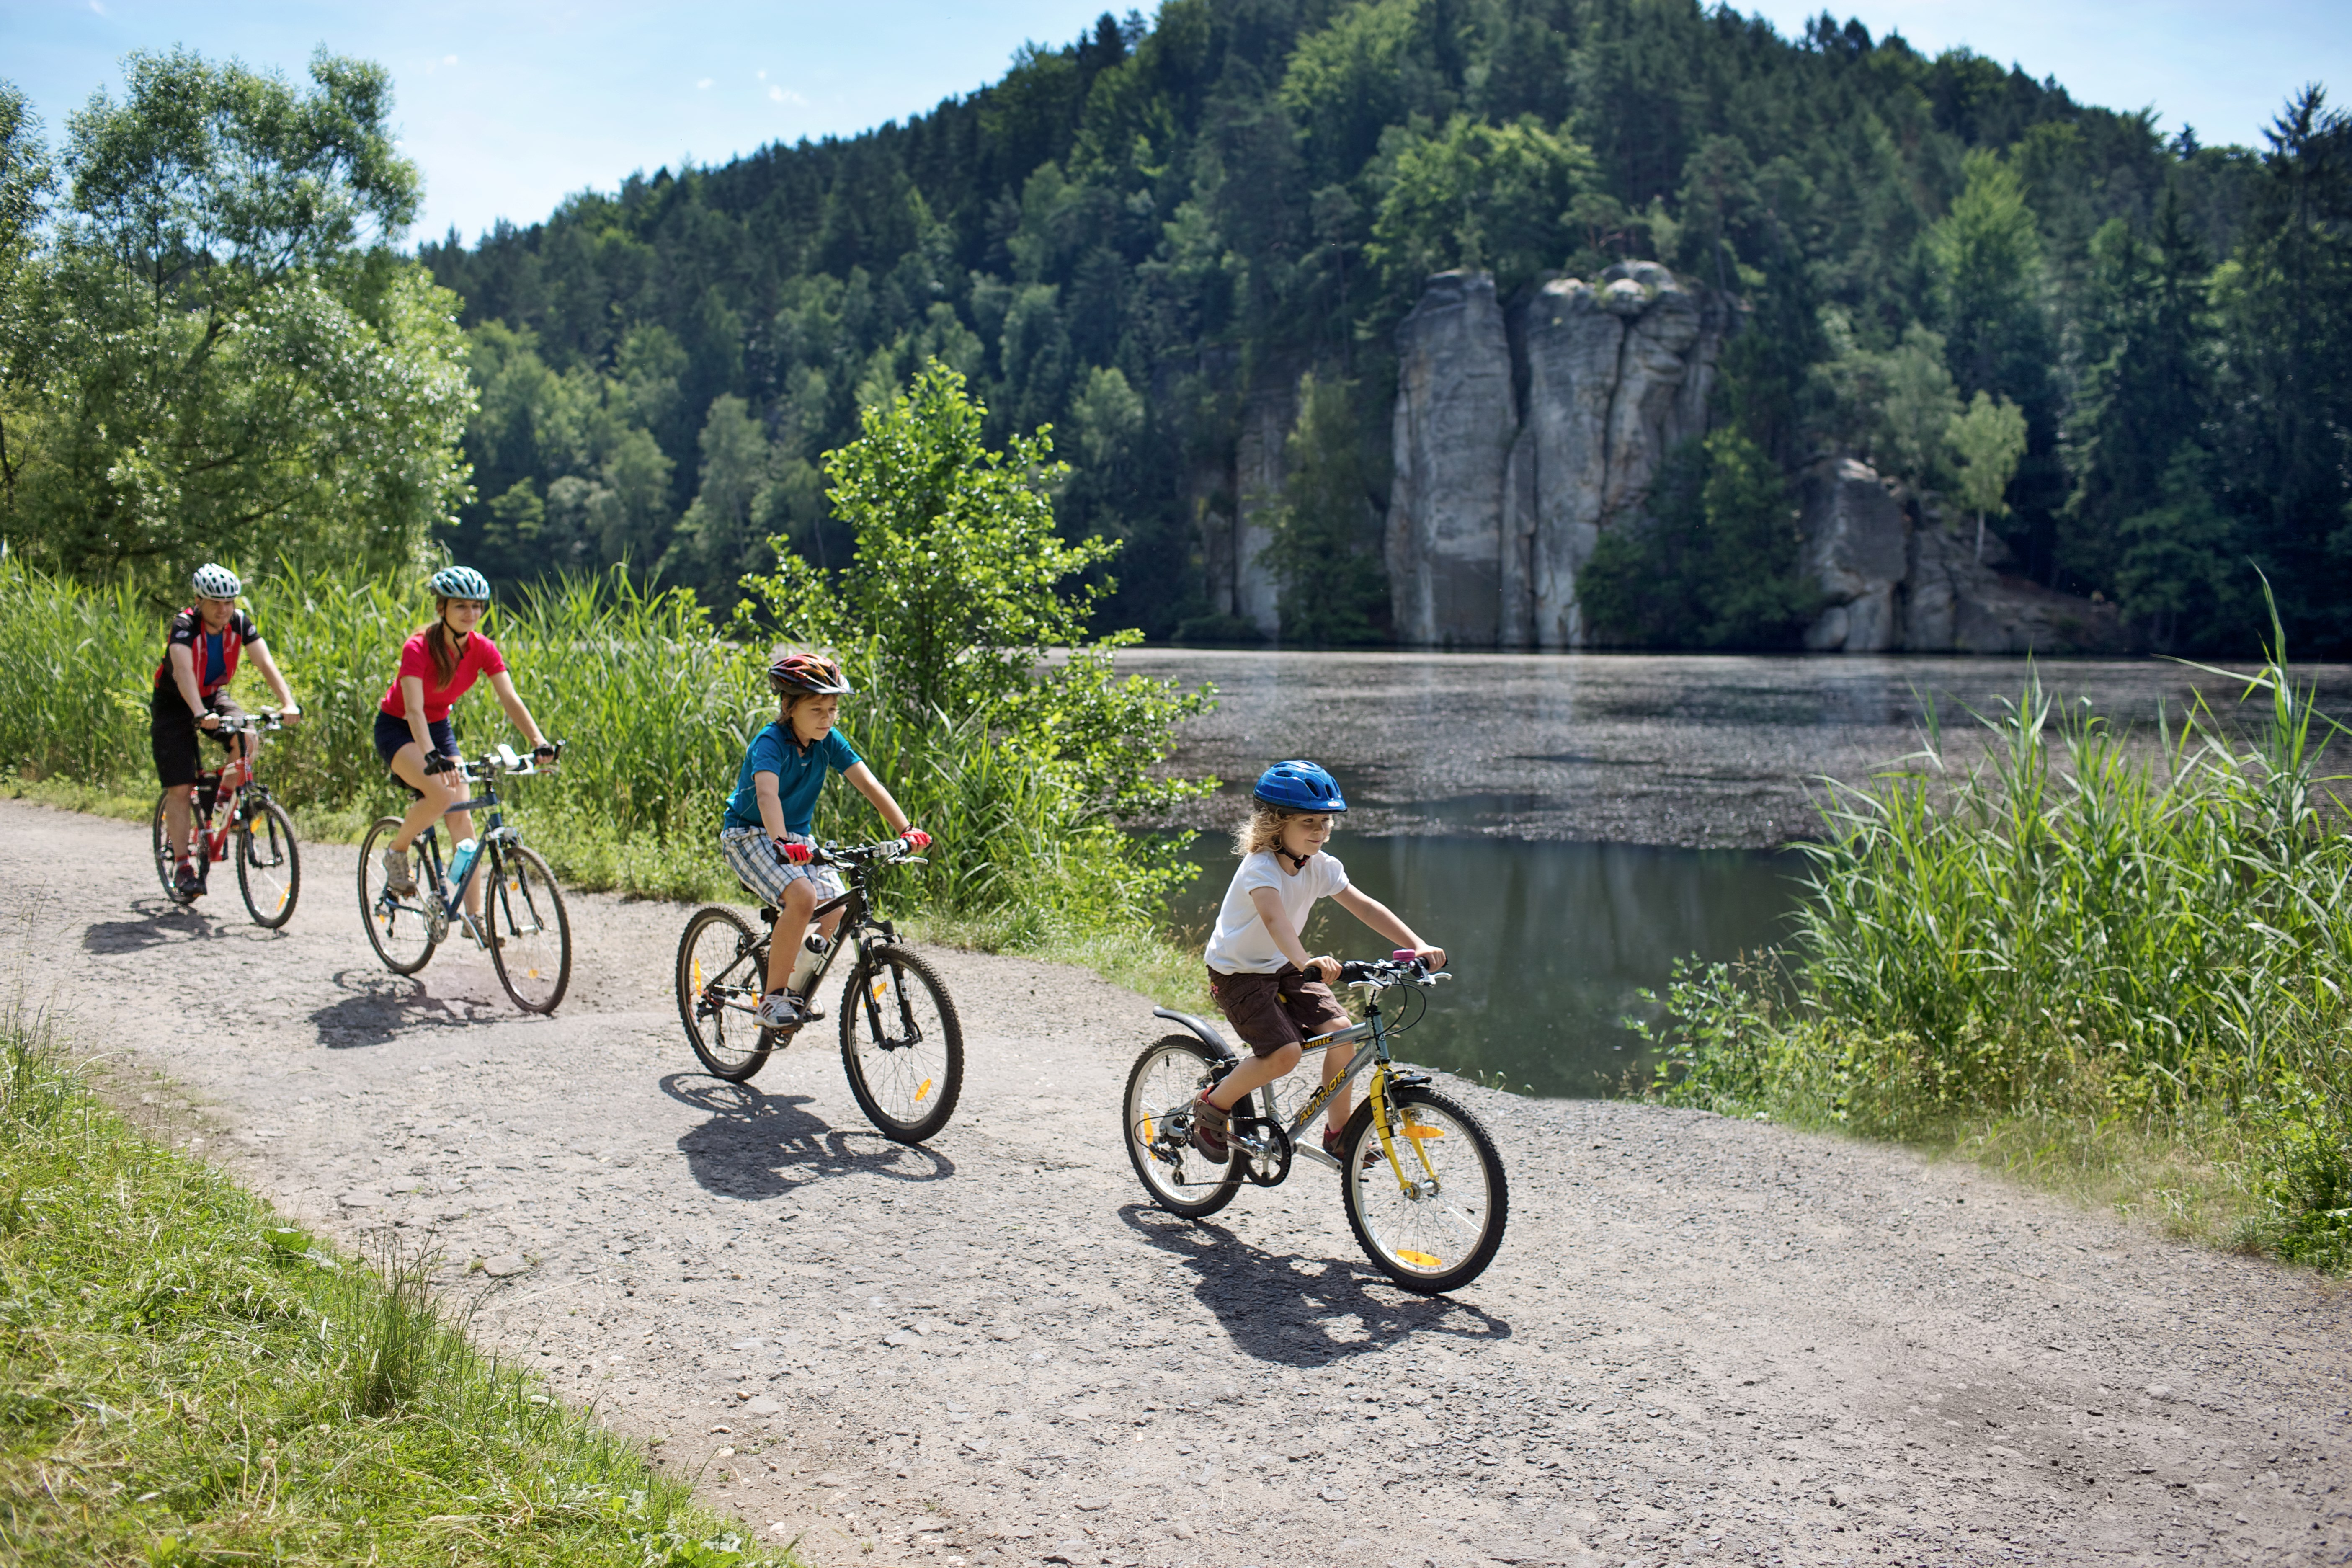 The special ticket for summer, cycling trains and nostalgic excursions.